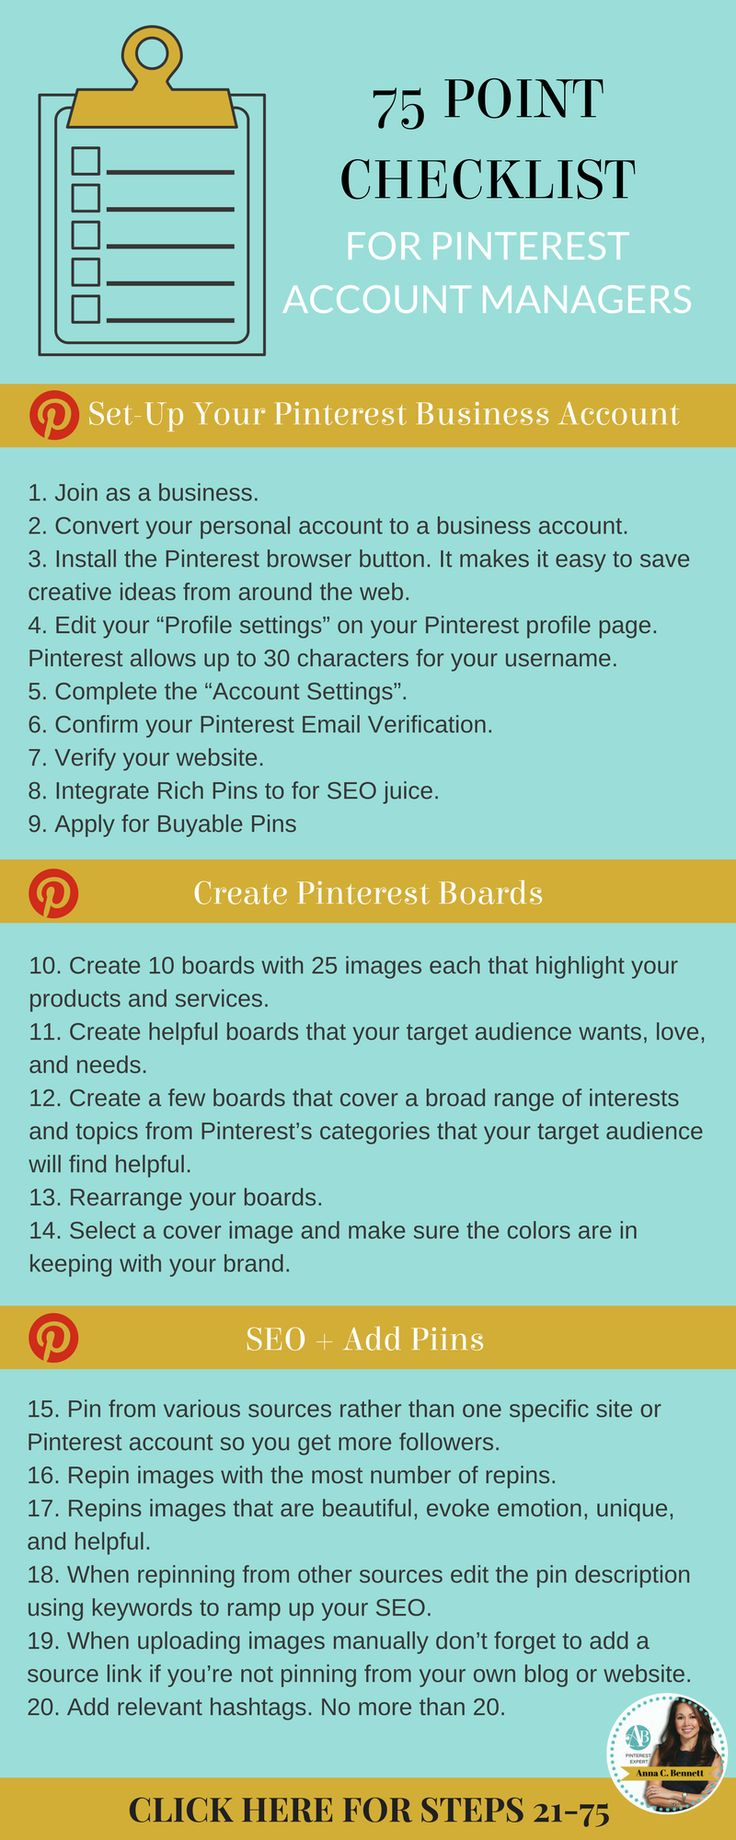 If #SocialMediaManagers decide to offer Pinterest account management services they owe it to their customers to learn how to use Pinterest. It is so scientific.   Pinning for personal reasons doesn't make you qualified to manage Pinterest accounts for business. It's not the same thing. Click to learn how to become a successful Pinterest account manager from #PinterestExpert Anna Bennett. #PinterestMarketing #PinterestTips #PinterestForBusiness #PinterestForBeginners #PinterestMarketingTips